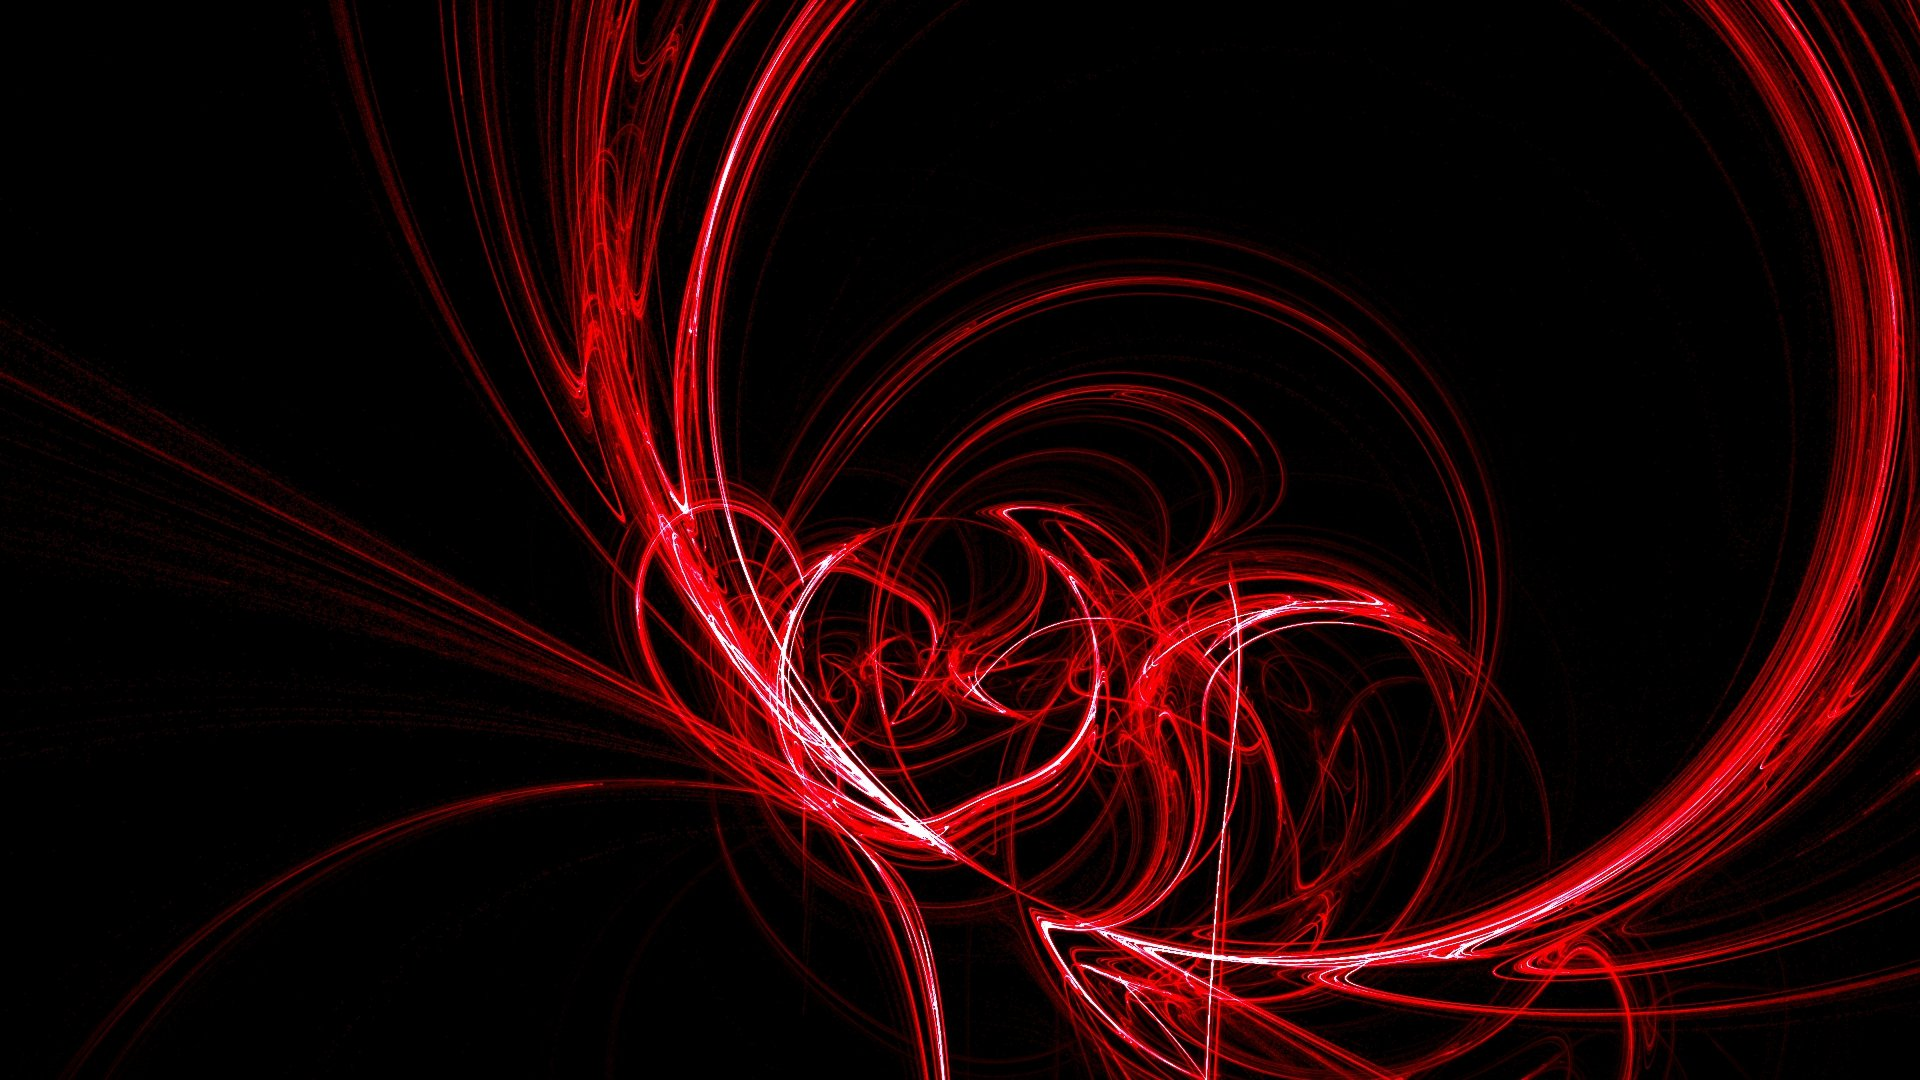 wallpoper.com/images/00/17/25/38/abstract-red_00172538.jpg